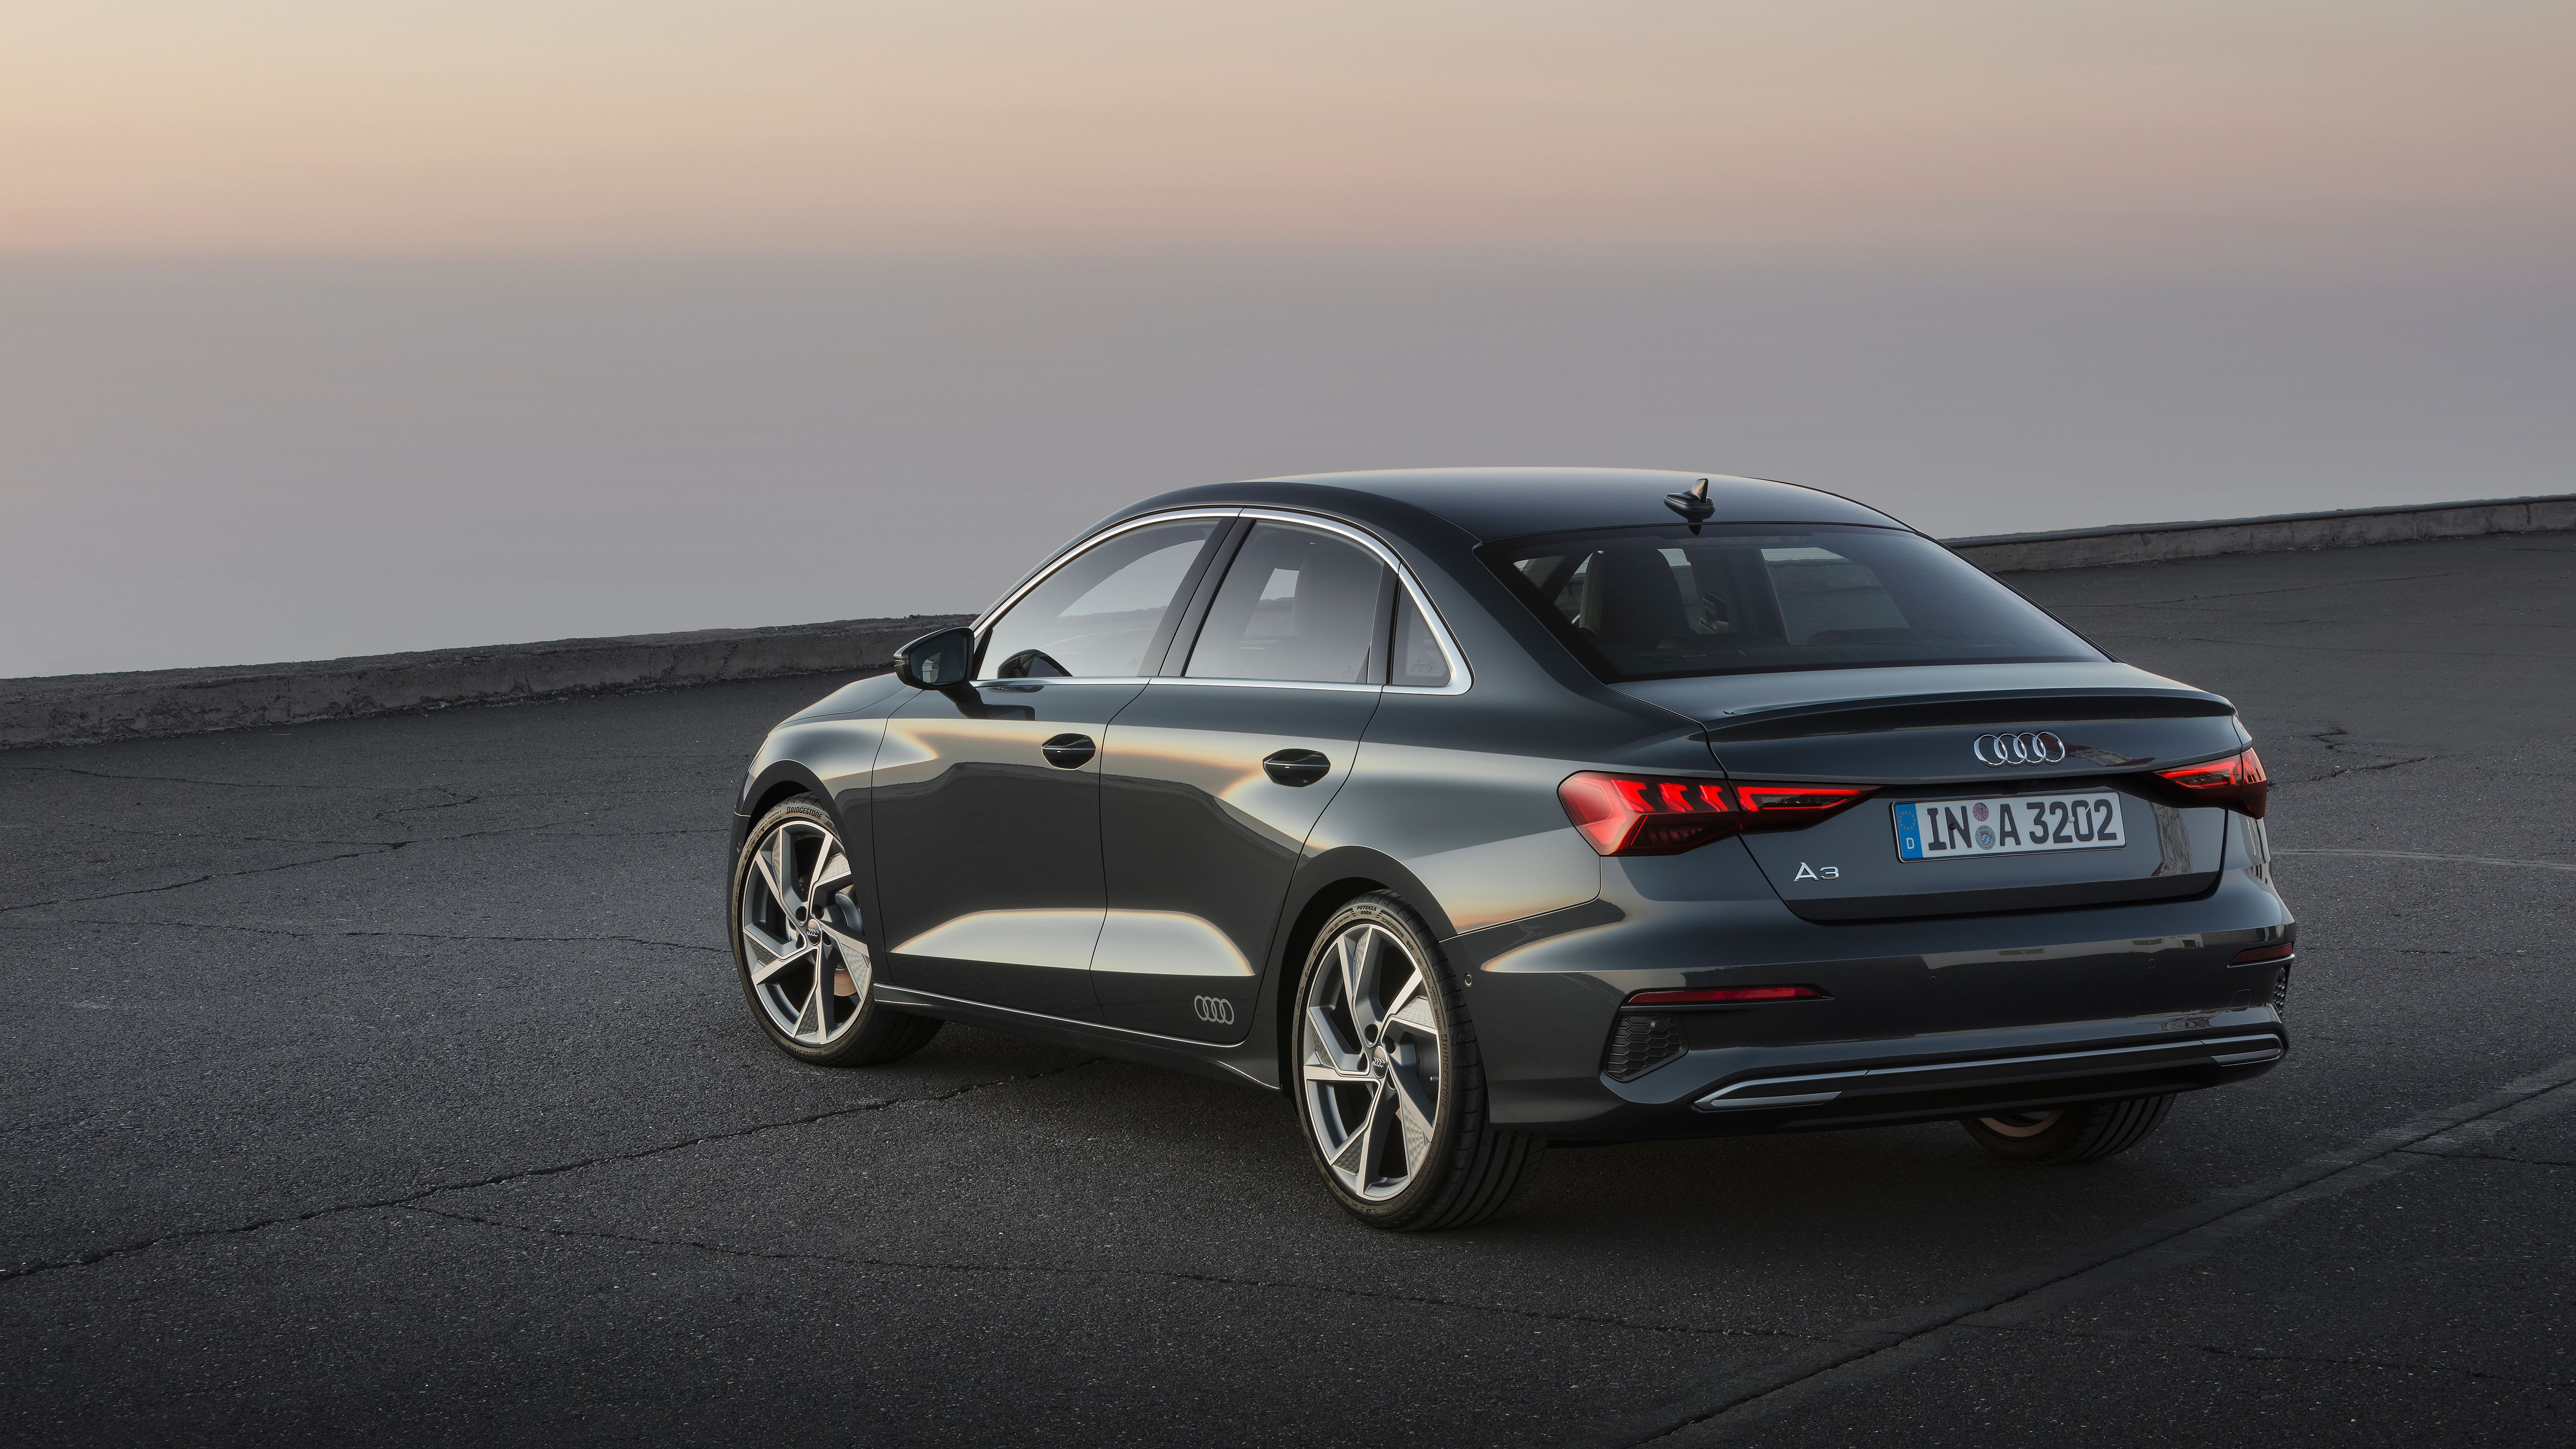 All new Audi A3 Saloon car from rear